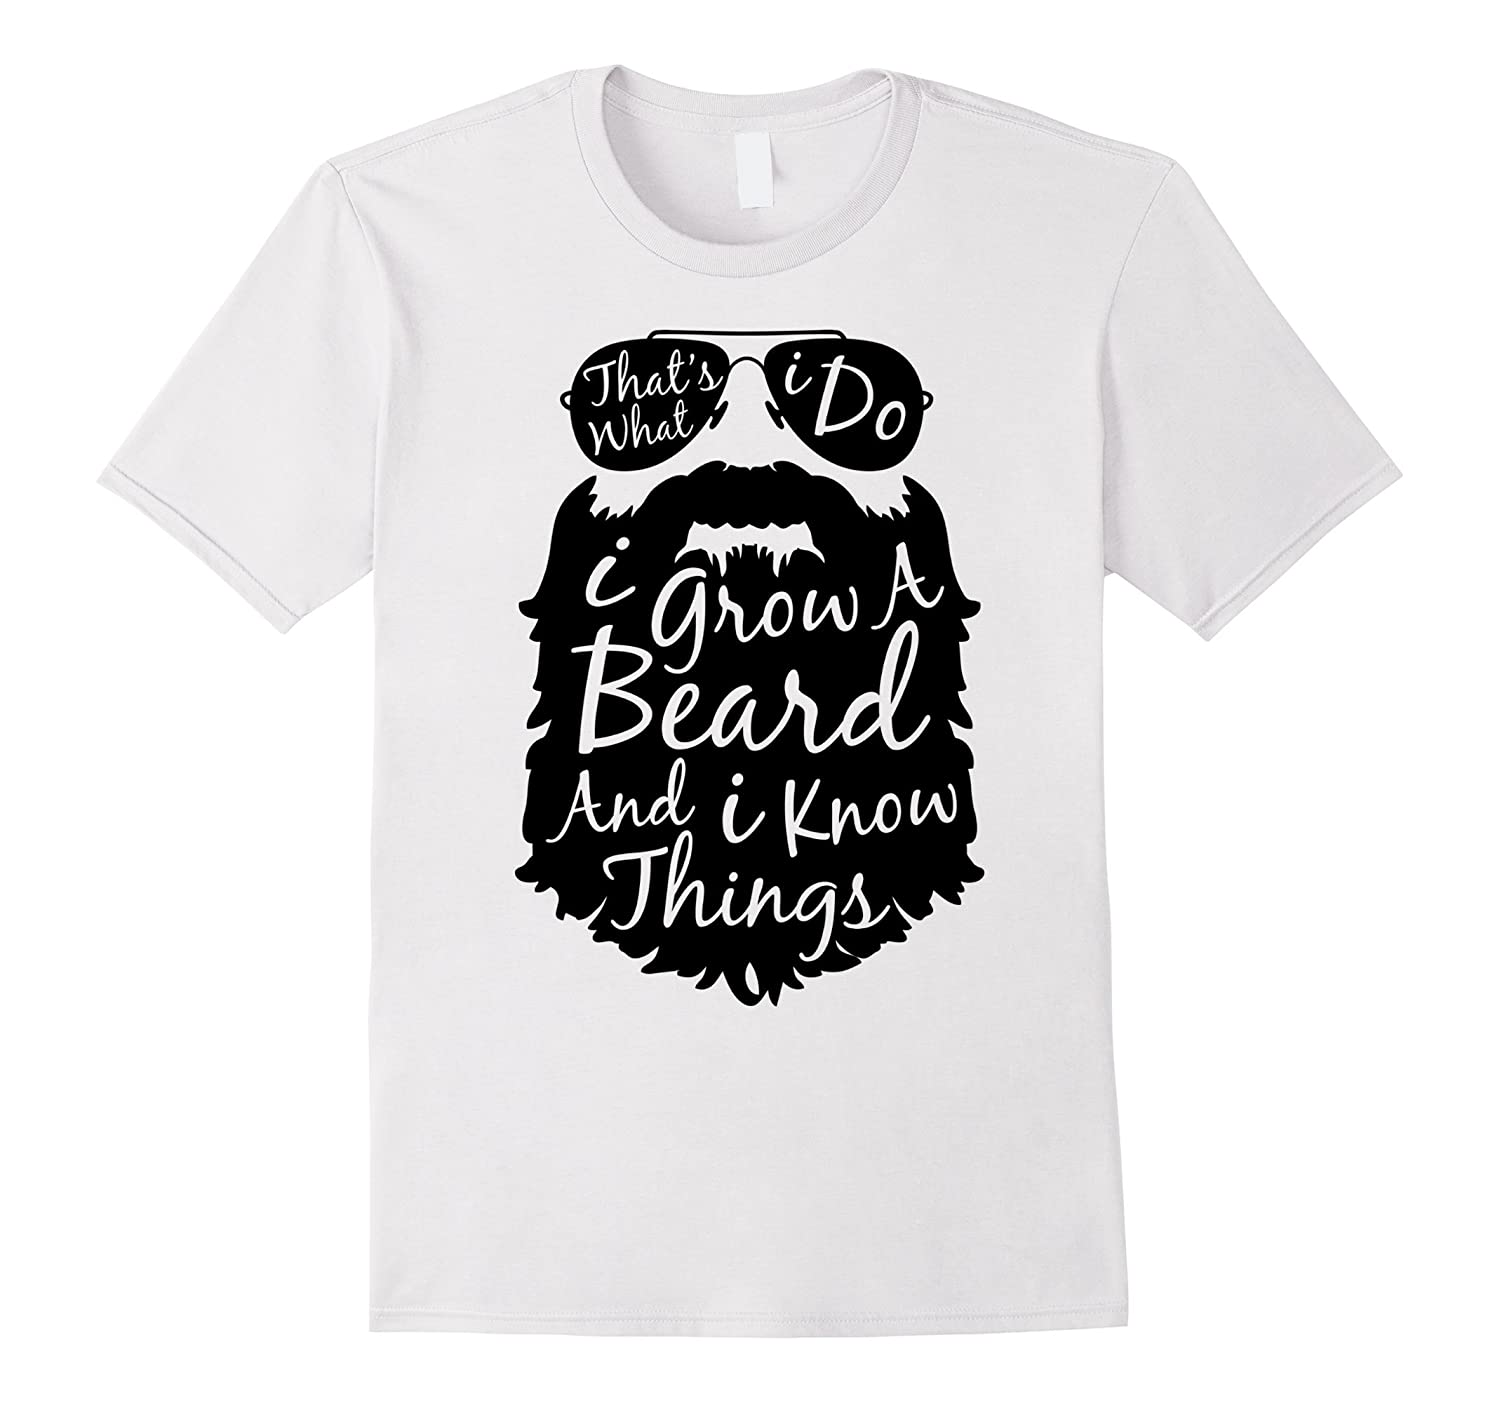 26ad756639 Thats what I do I grow a beard and I know things t shirt-ANZ ...